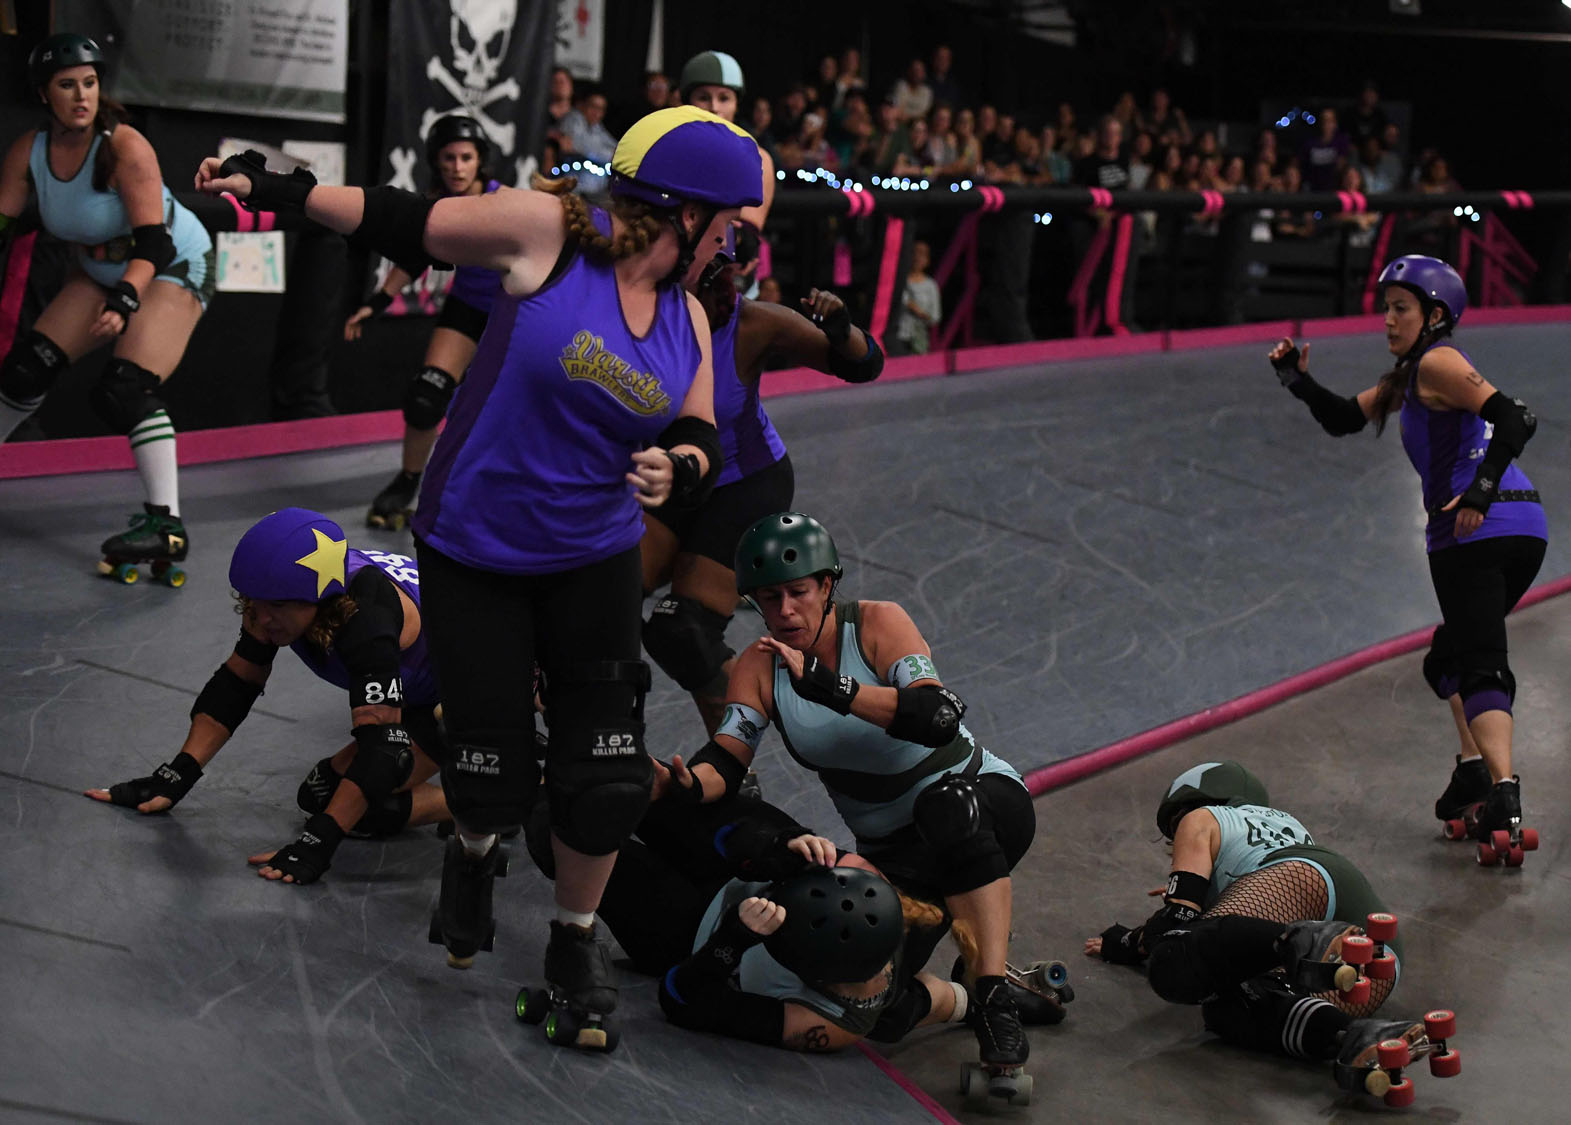 Roller skating los angeles -  Purple Tops Compete Against The Tough Cookies Team Blue Tops During The L A Derby Dolls Women S Banked Track Roller Derby Event In Los Angeles